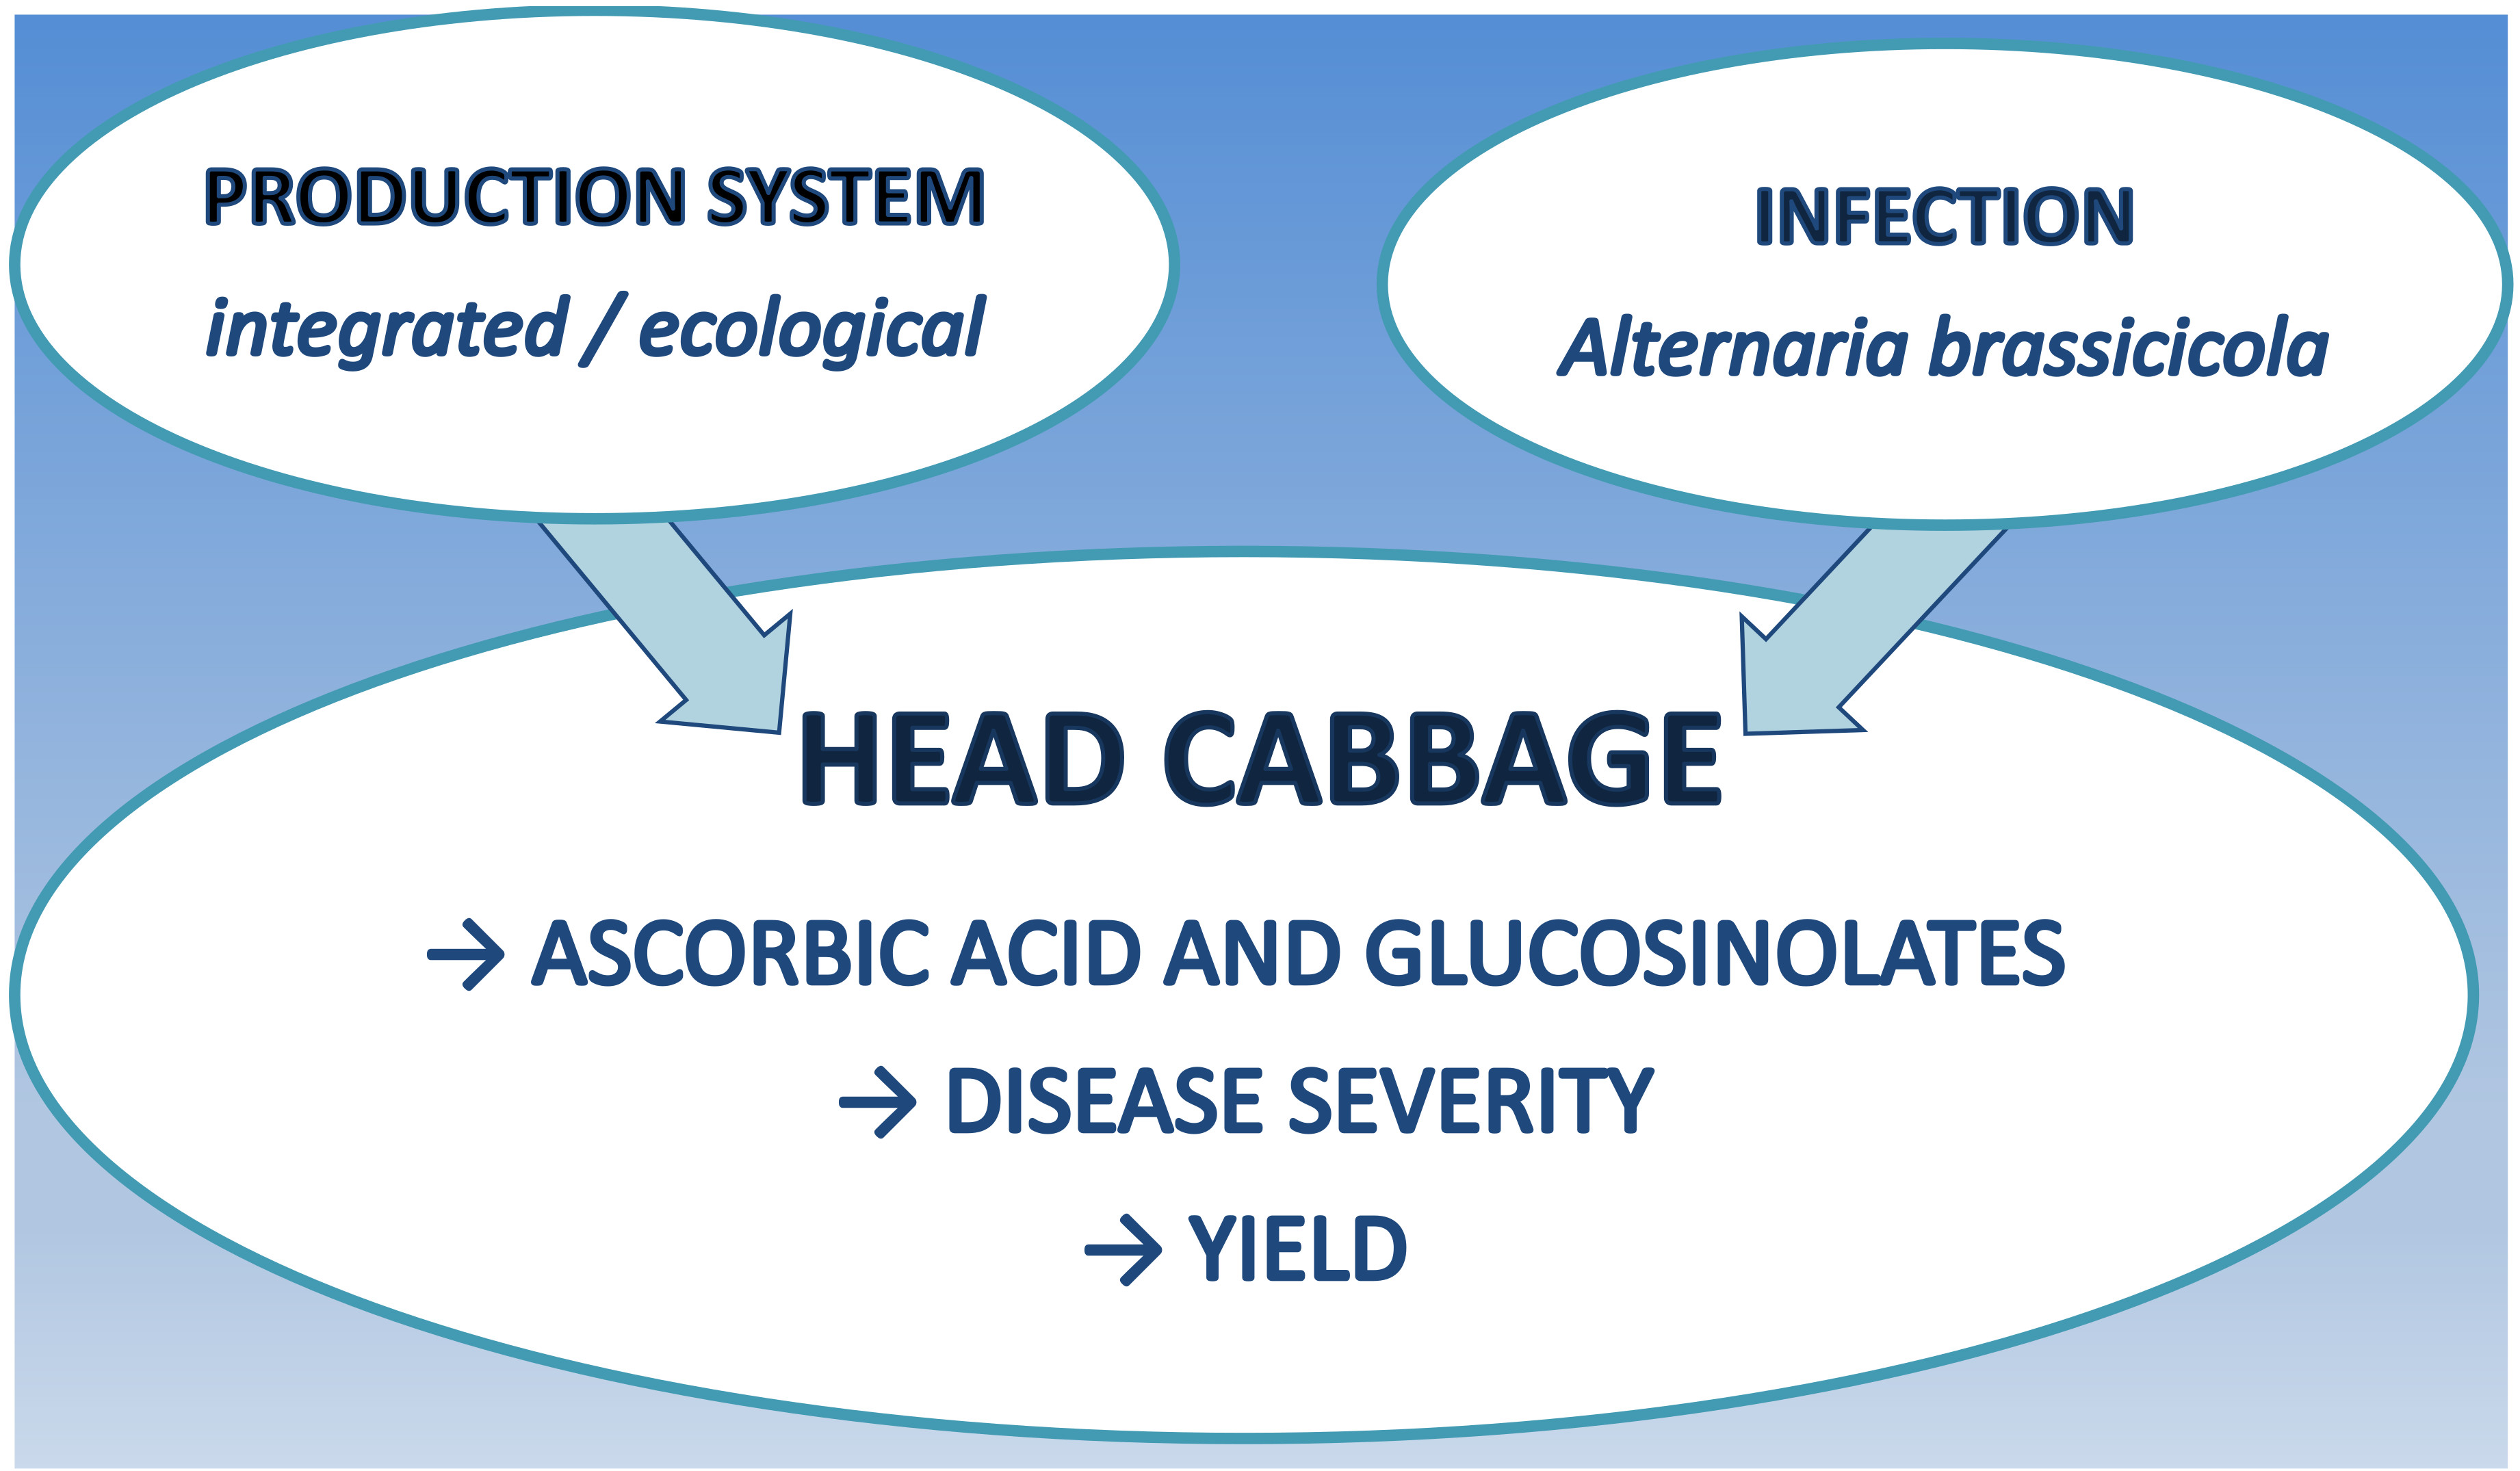 Molecules Free Full Text Ascorbic Acid And Glucosinolate Levels In New Czech Cabbage Cultivars Effect Of Production System And Fungal Infection Html